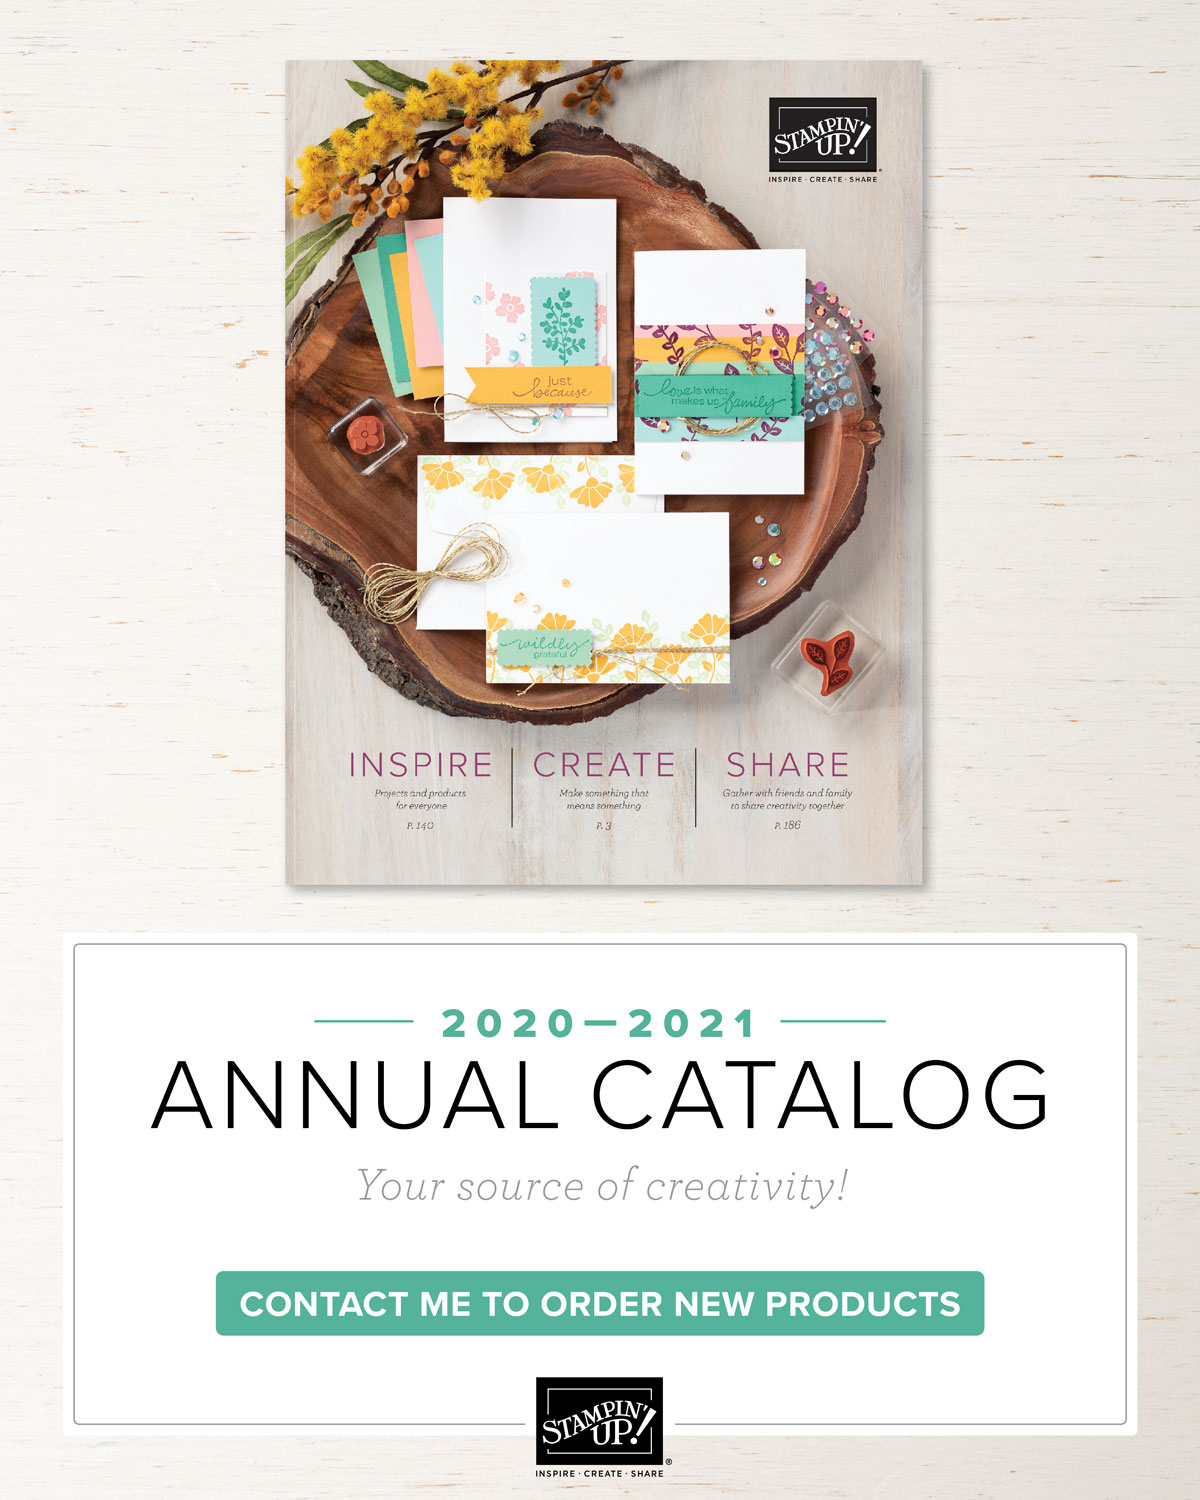 Stampin' Up! June 2020-2021 Catalog